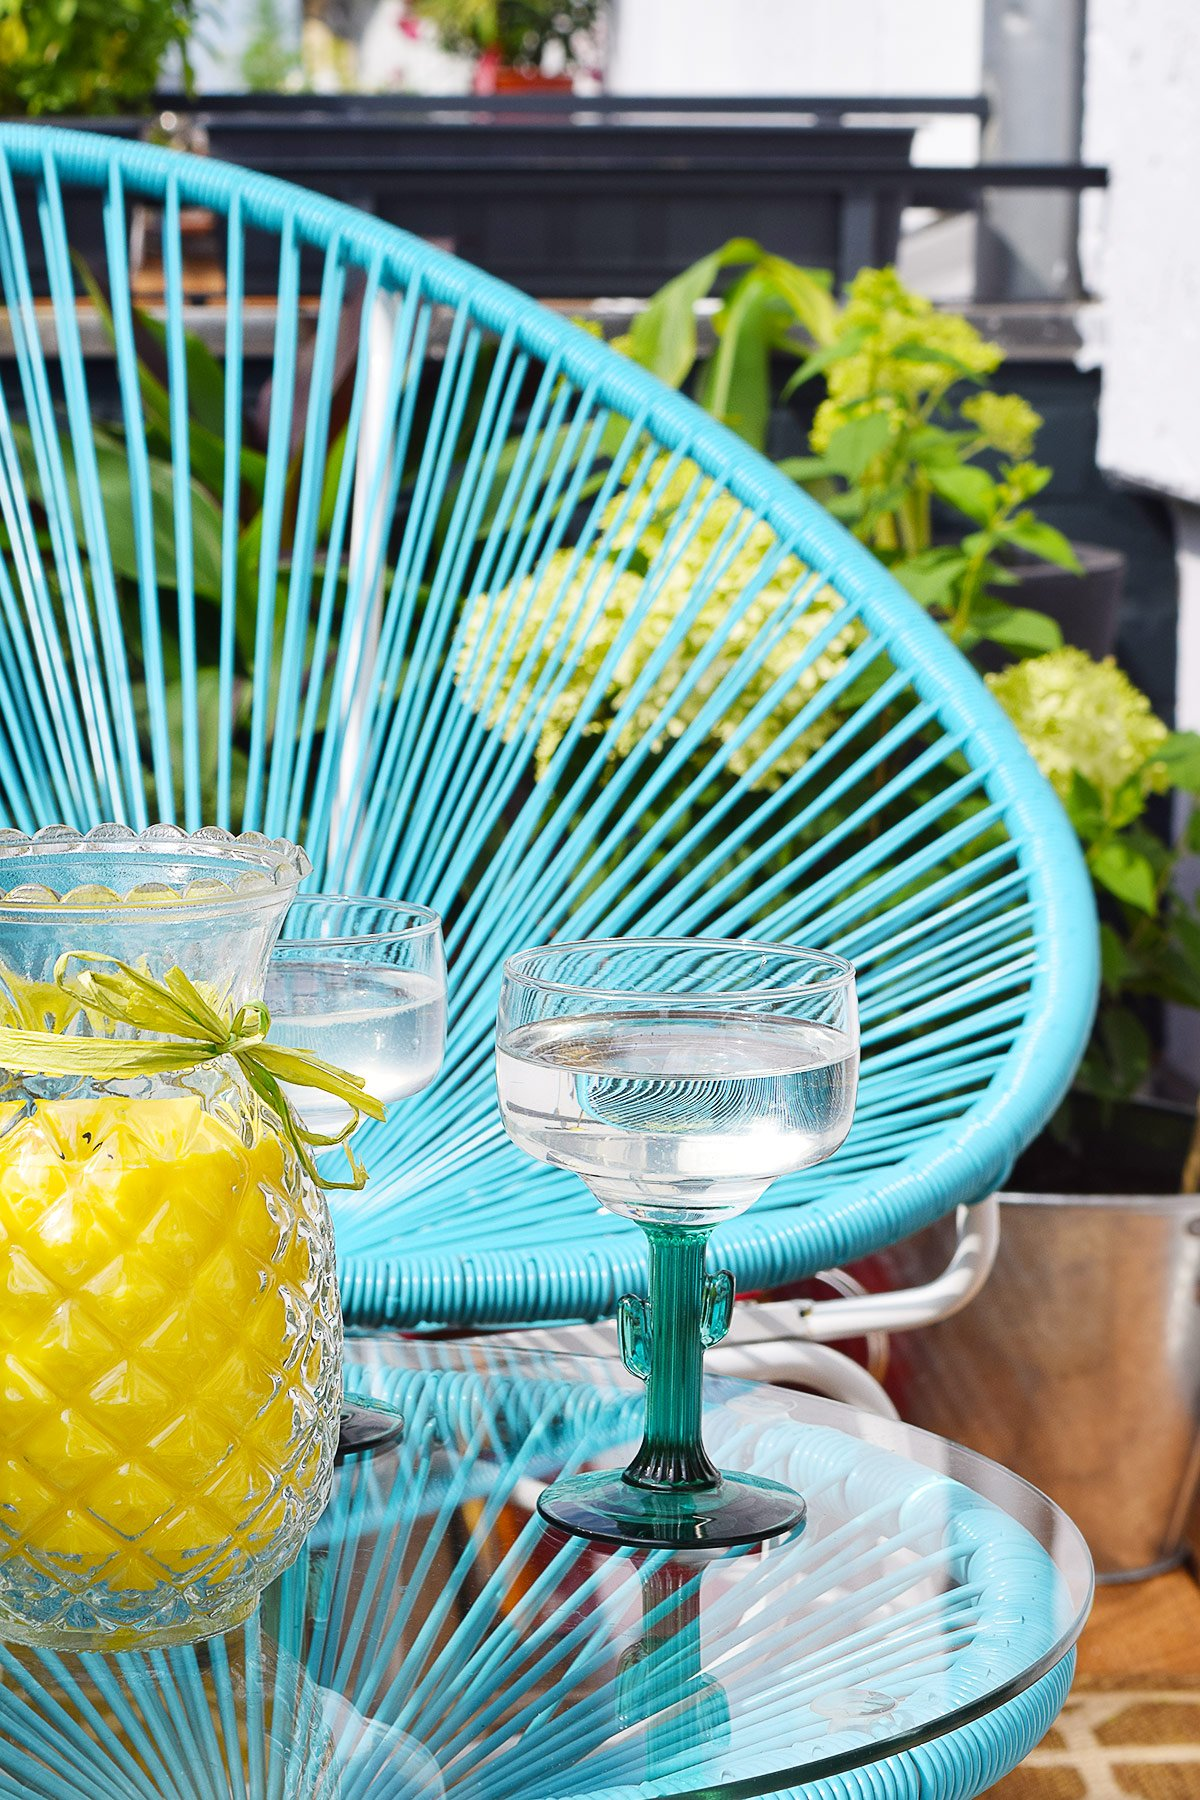 Acapulco Chair & Cactus Margarita Glasses | Little House On The Corner